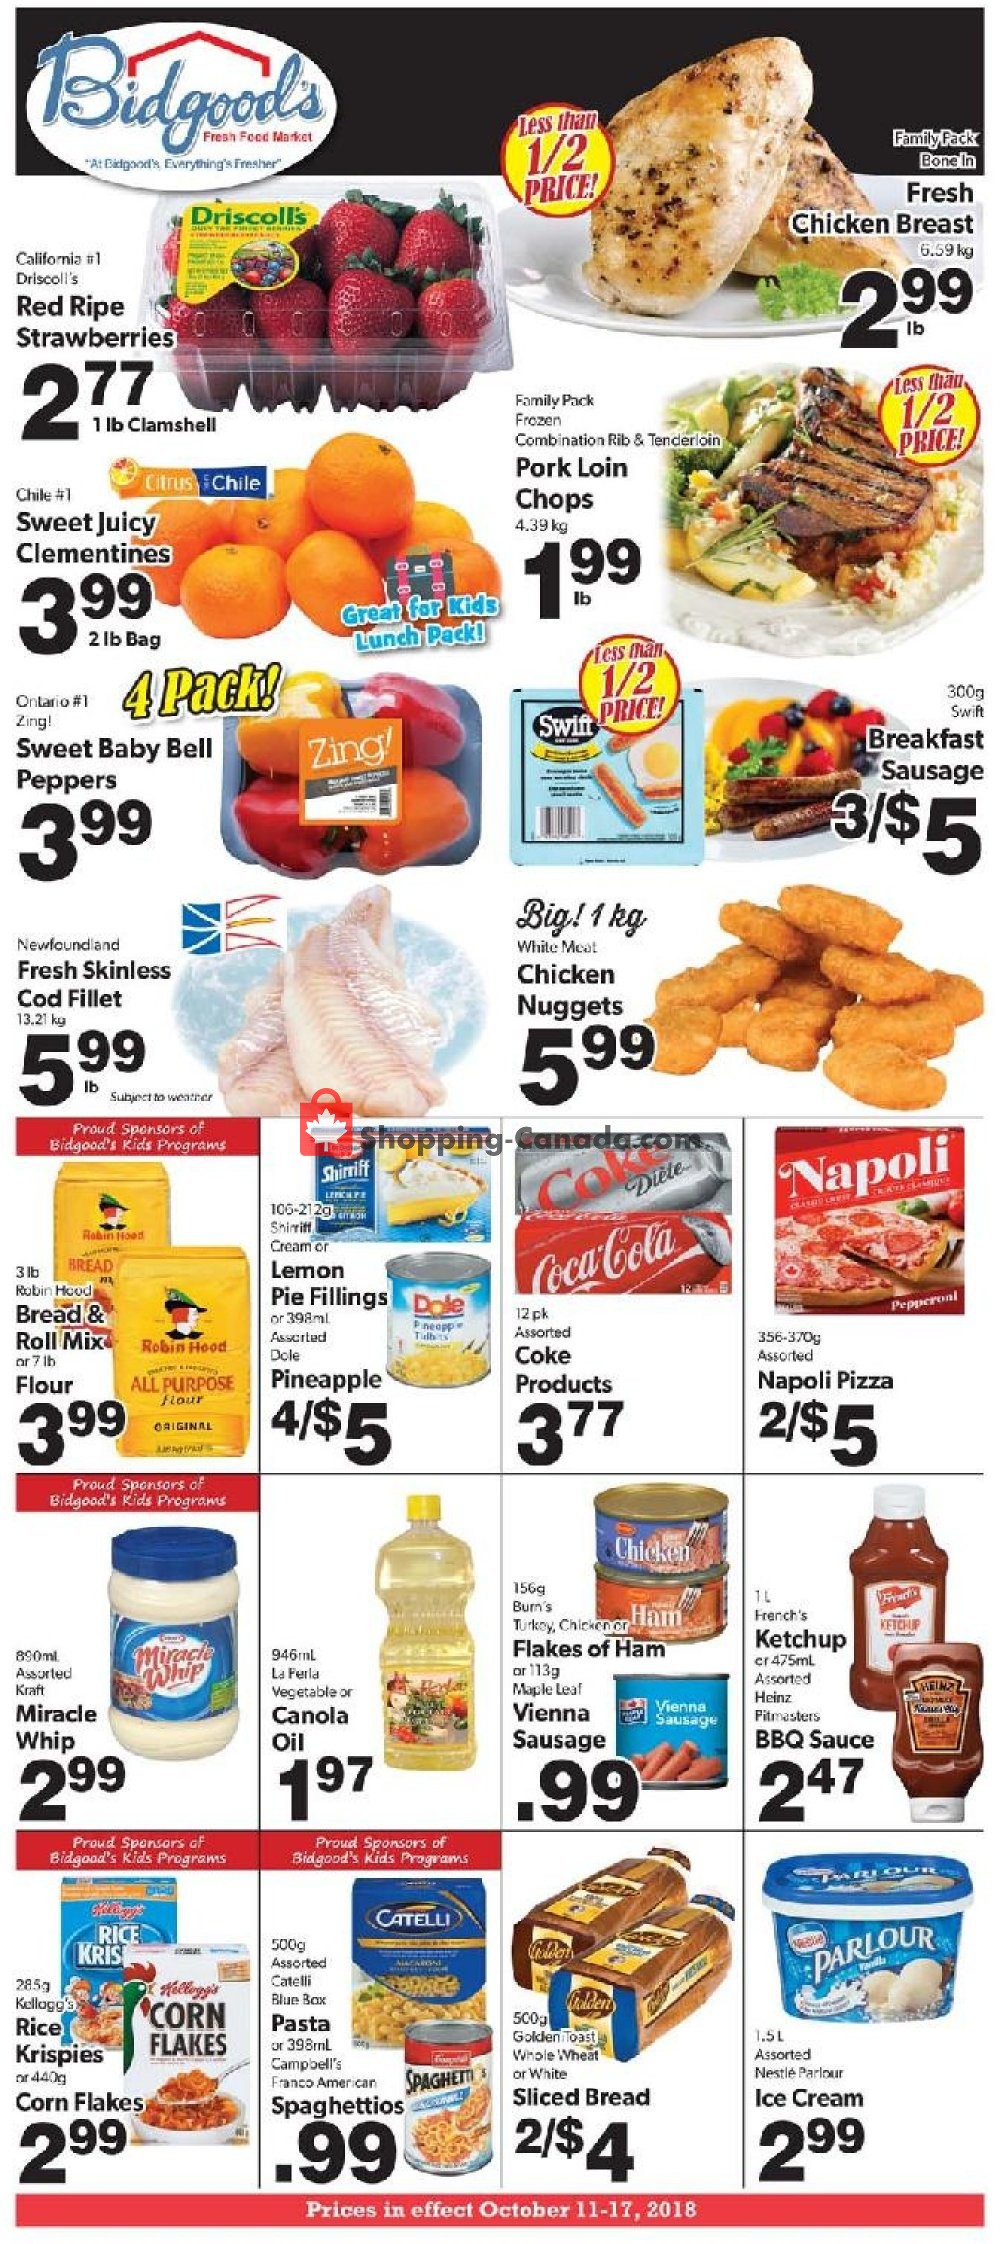 Flyer Bidgood's Supermarket Canada - from Thursday October 11, 2018 to Wednesday October 17, 2018